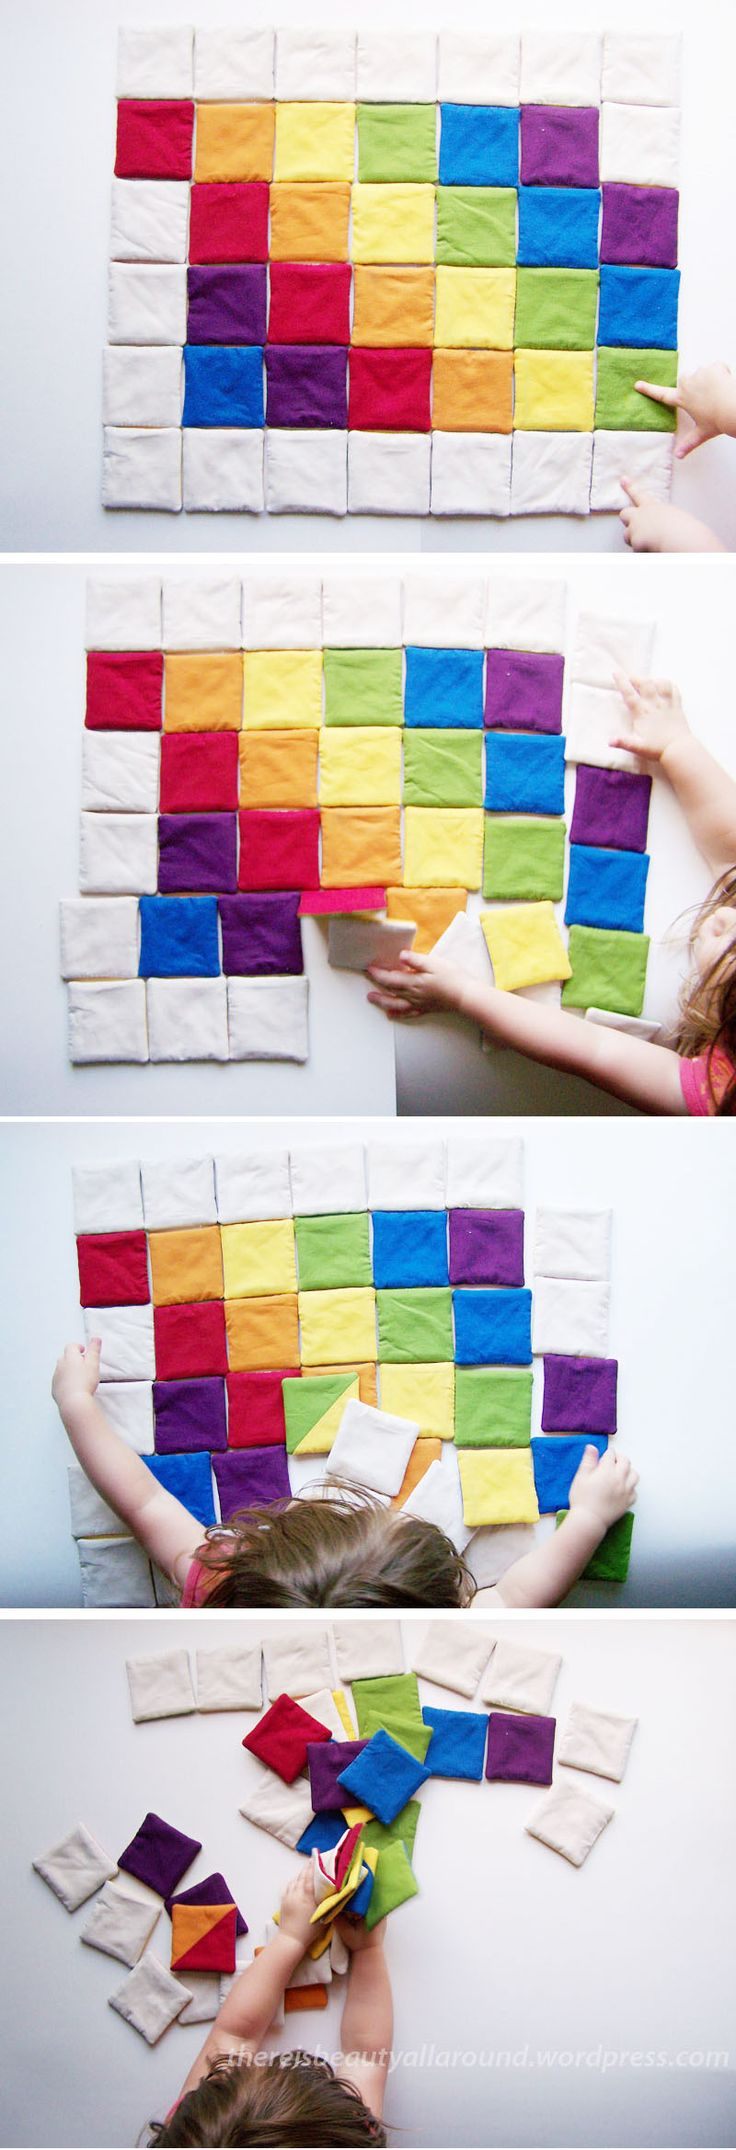 tutorial: isa playing (textile puzzle)